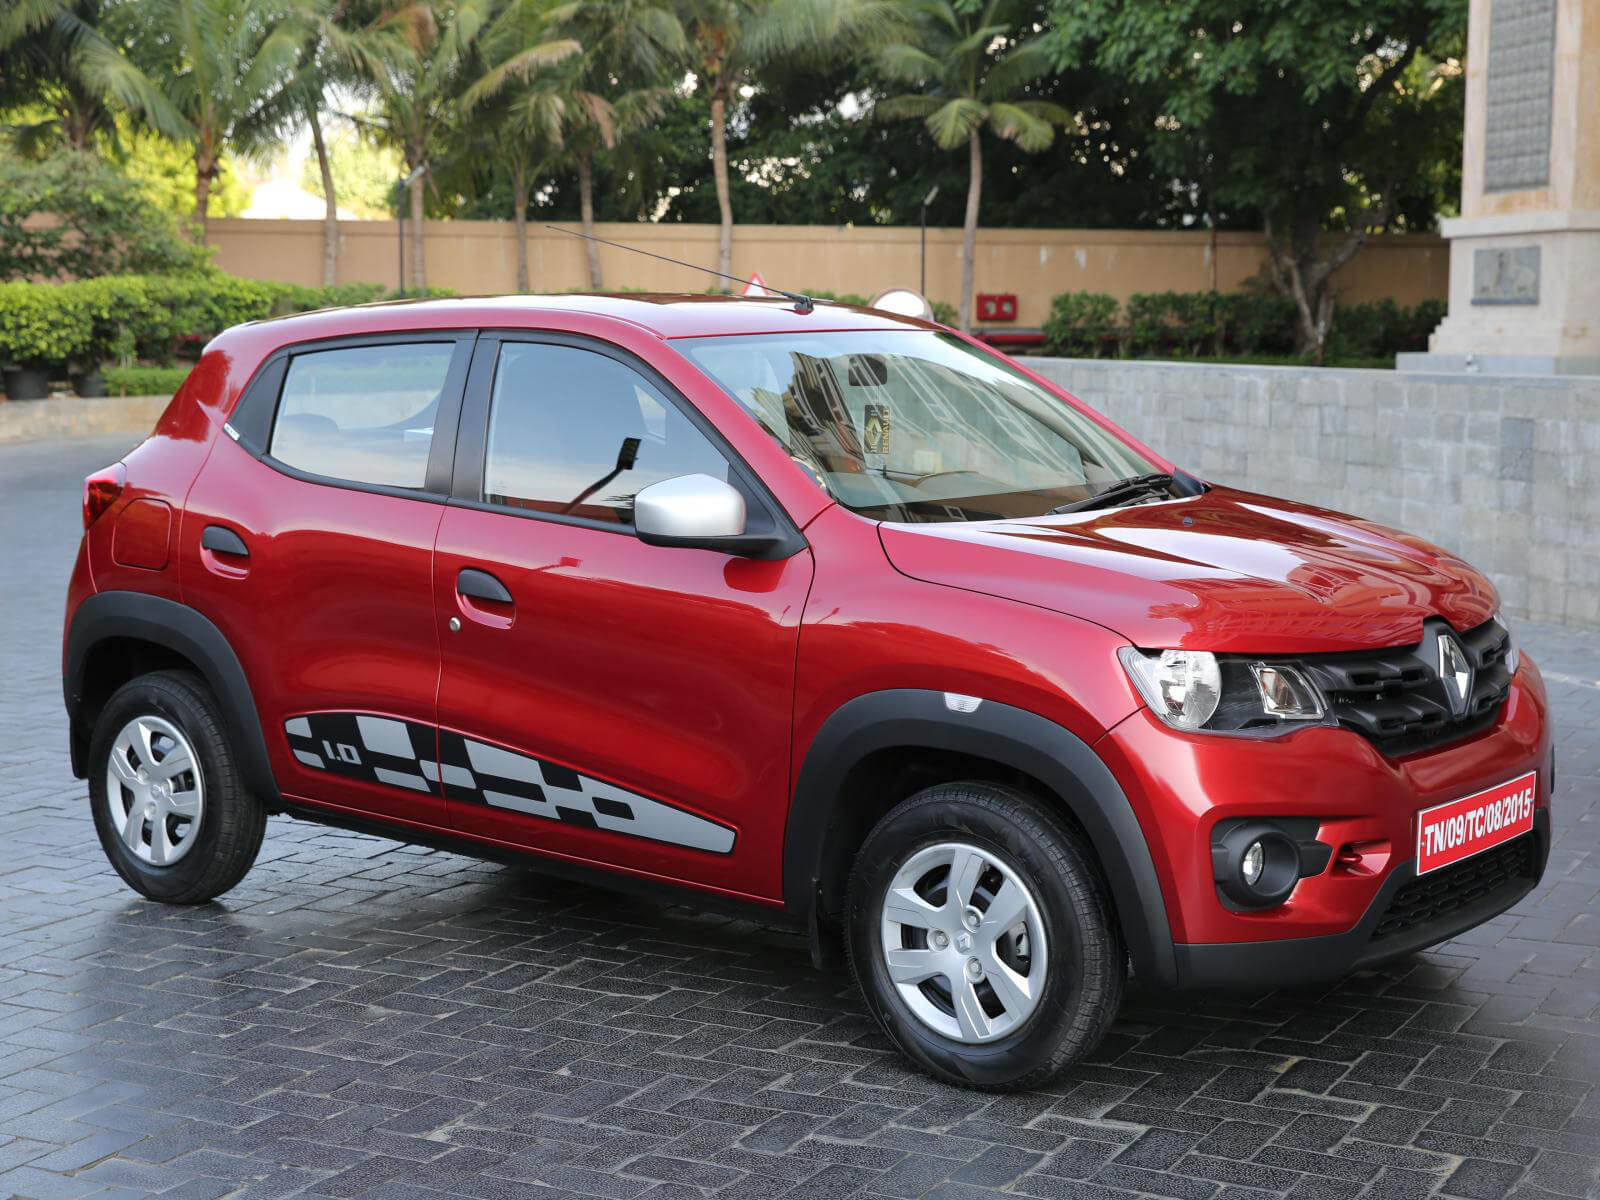 Renault Kwid 2015 2018 Wallpapers Free Download Climber Photos Photo Car 360 Degree View